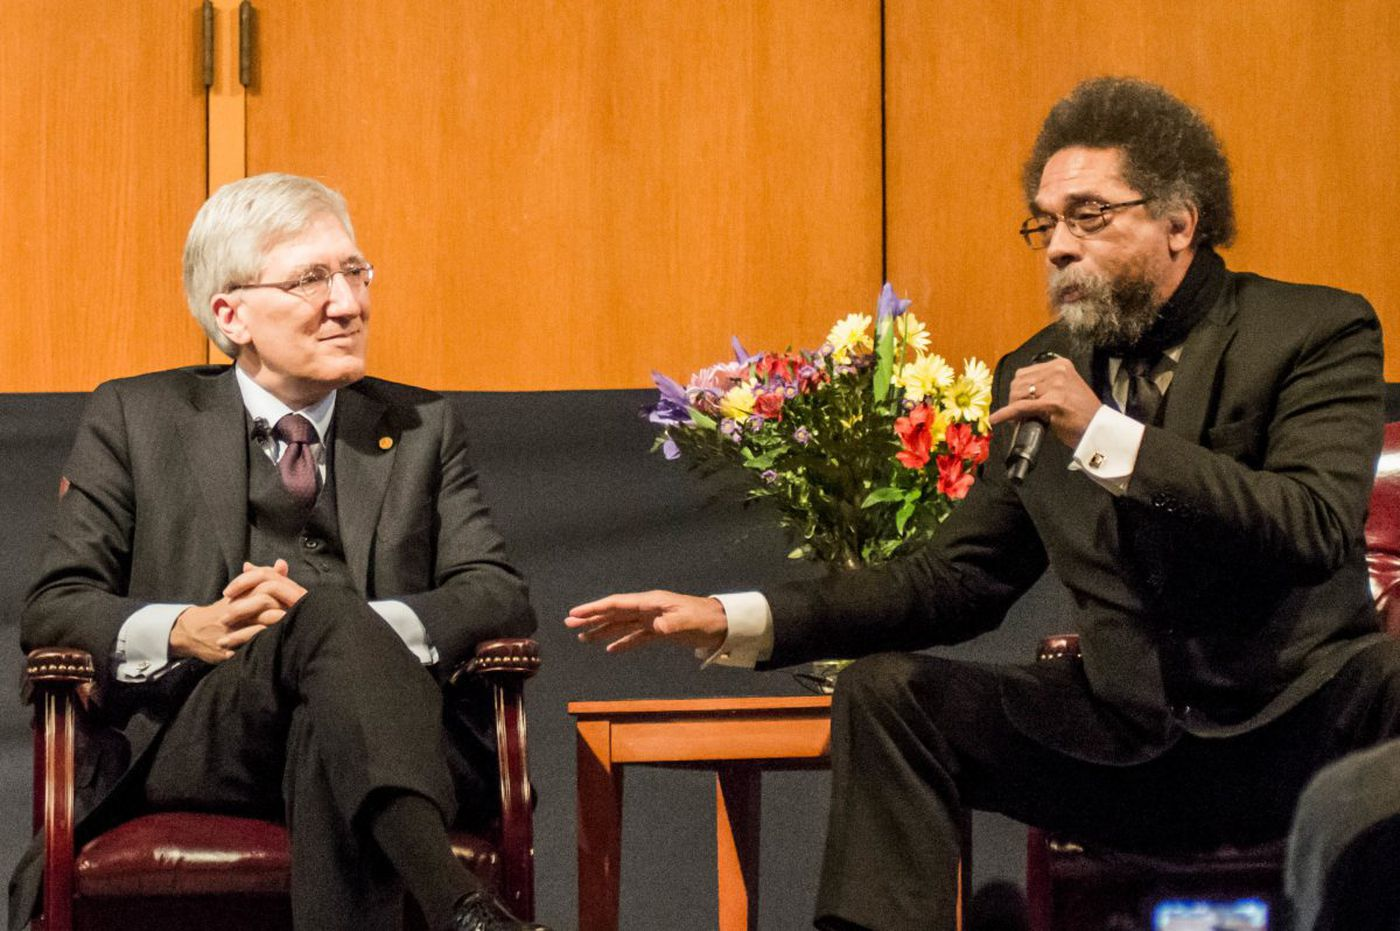 What we can learn about civic friendship from ideological odd couple Cornel West and Robert George | Perspective